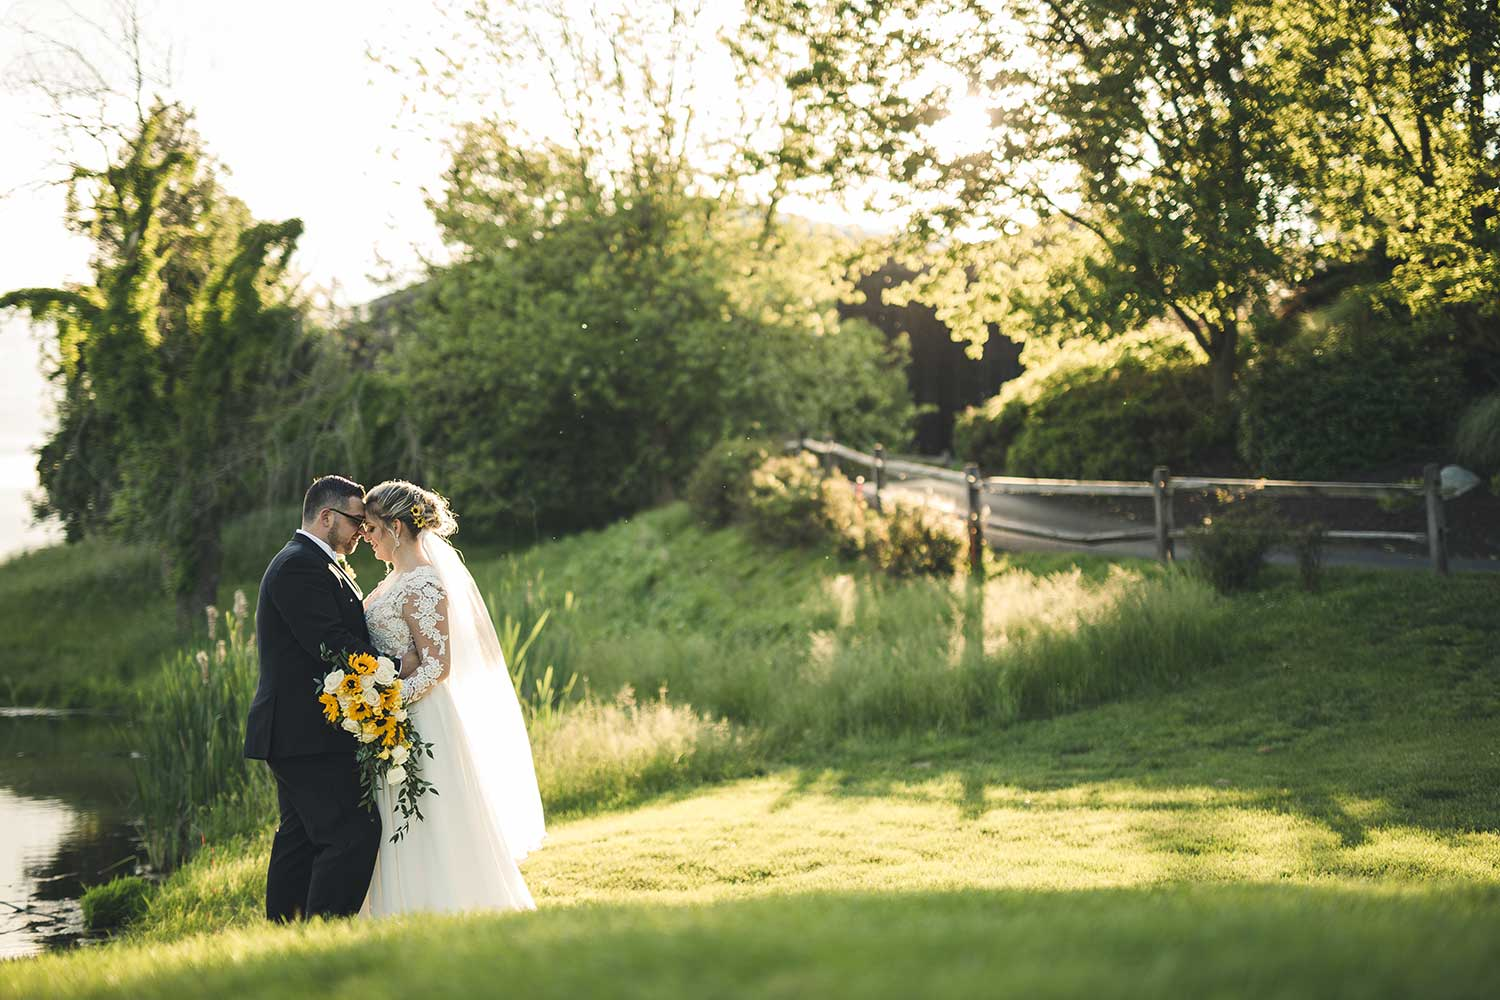 Manor House at Commonwealth Wedding Couples Portraits